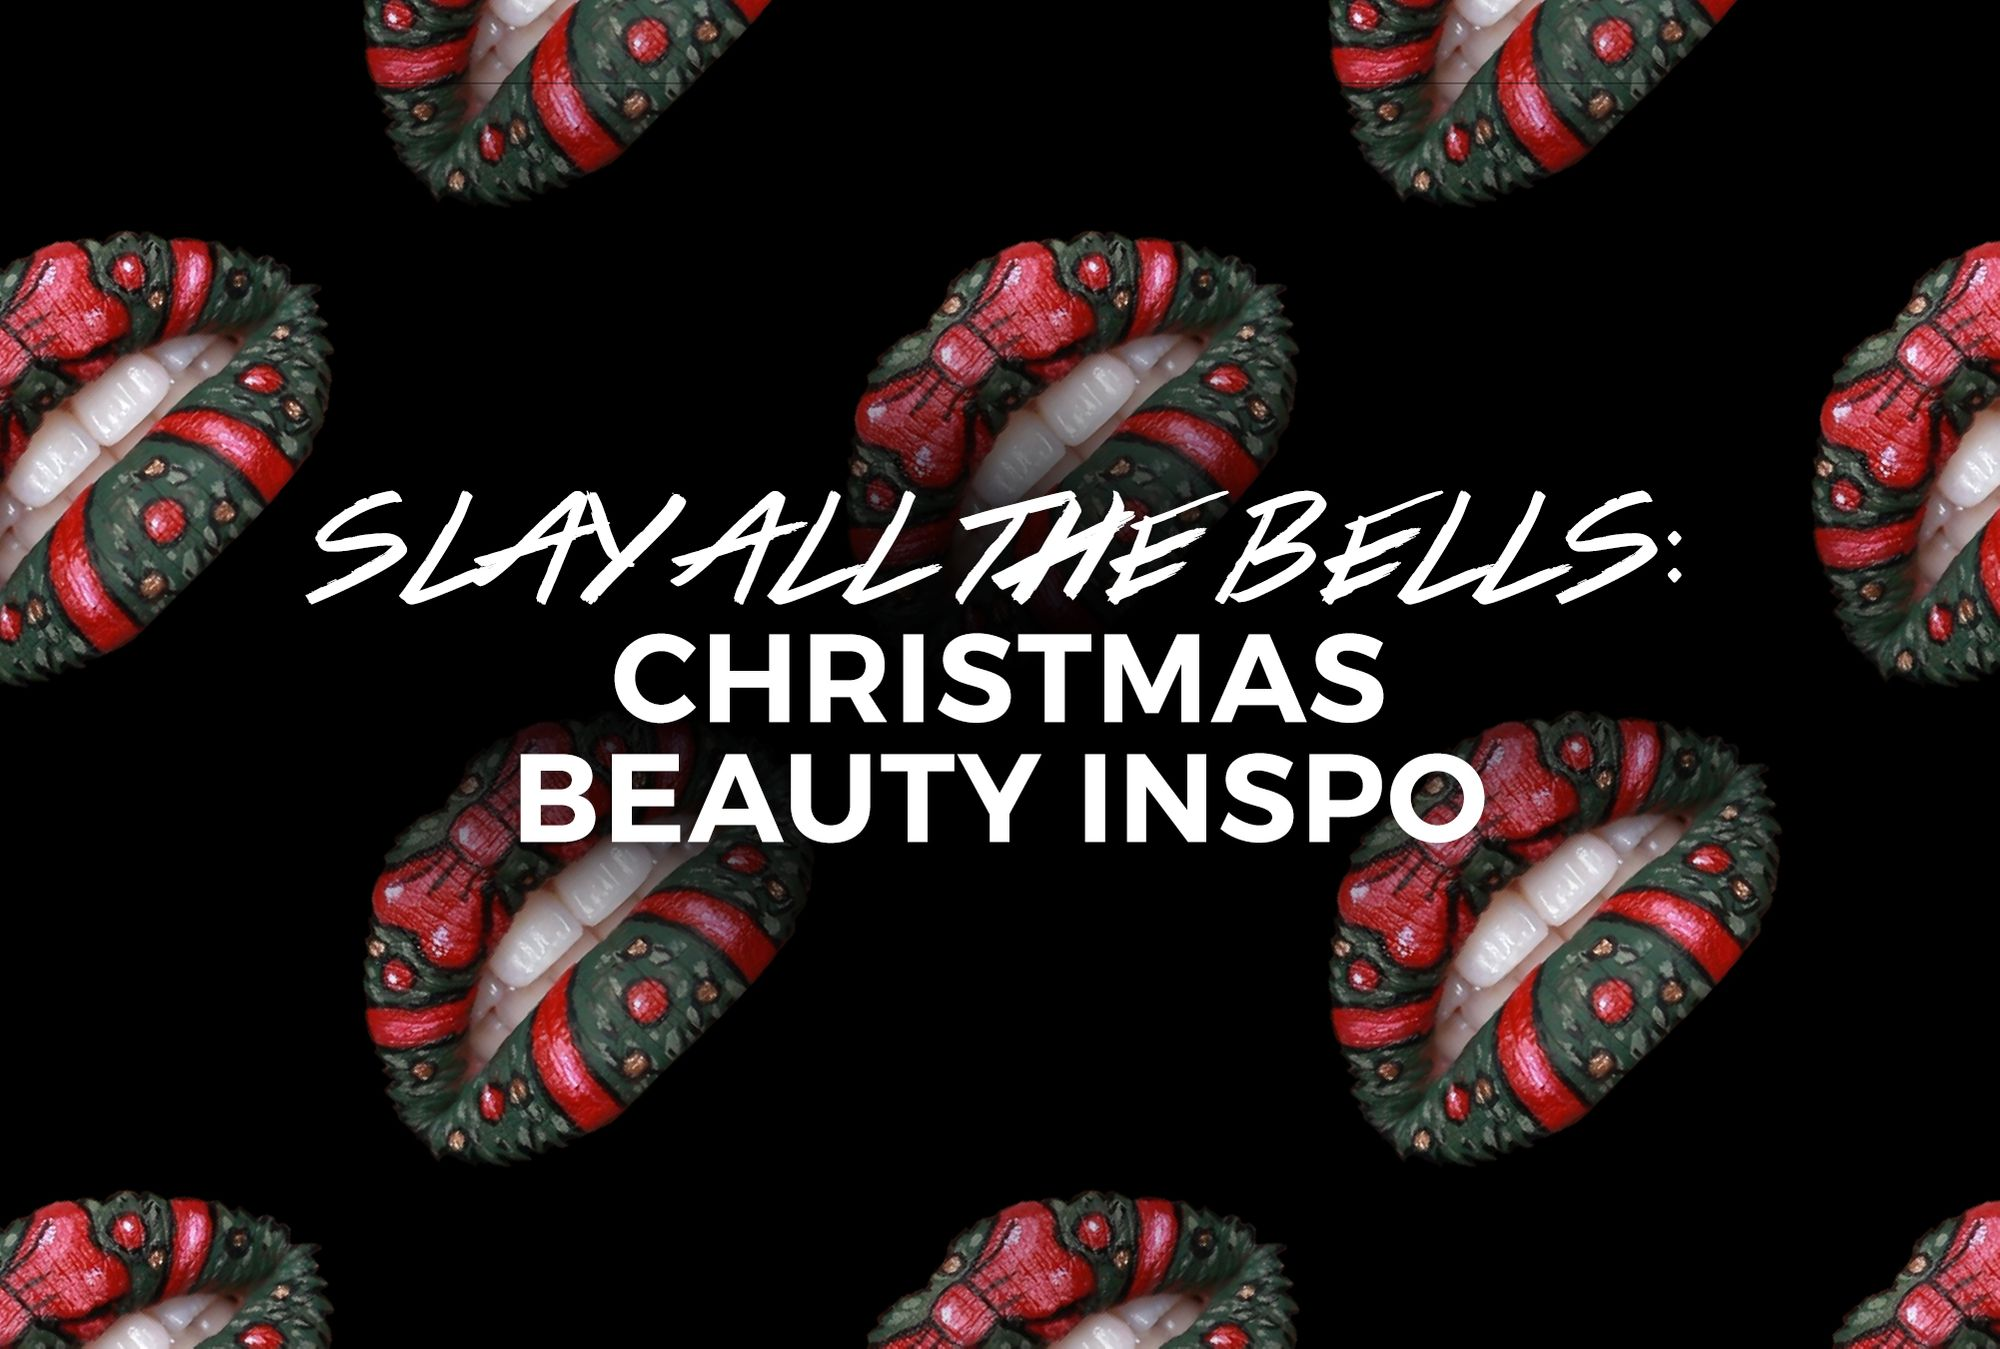 #SlayBellsRing: 6 Bold Beauty Looks For The Holidays